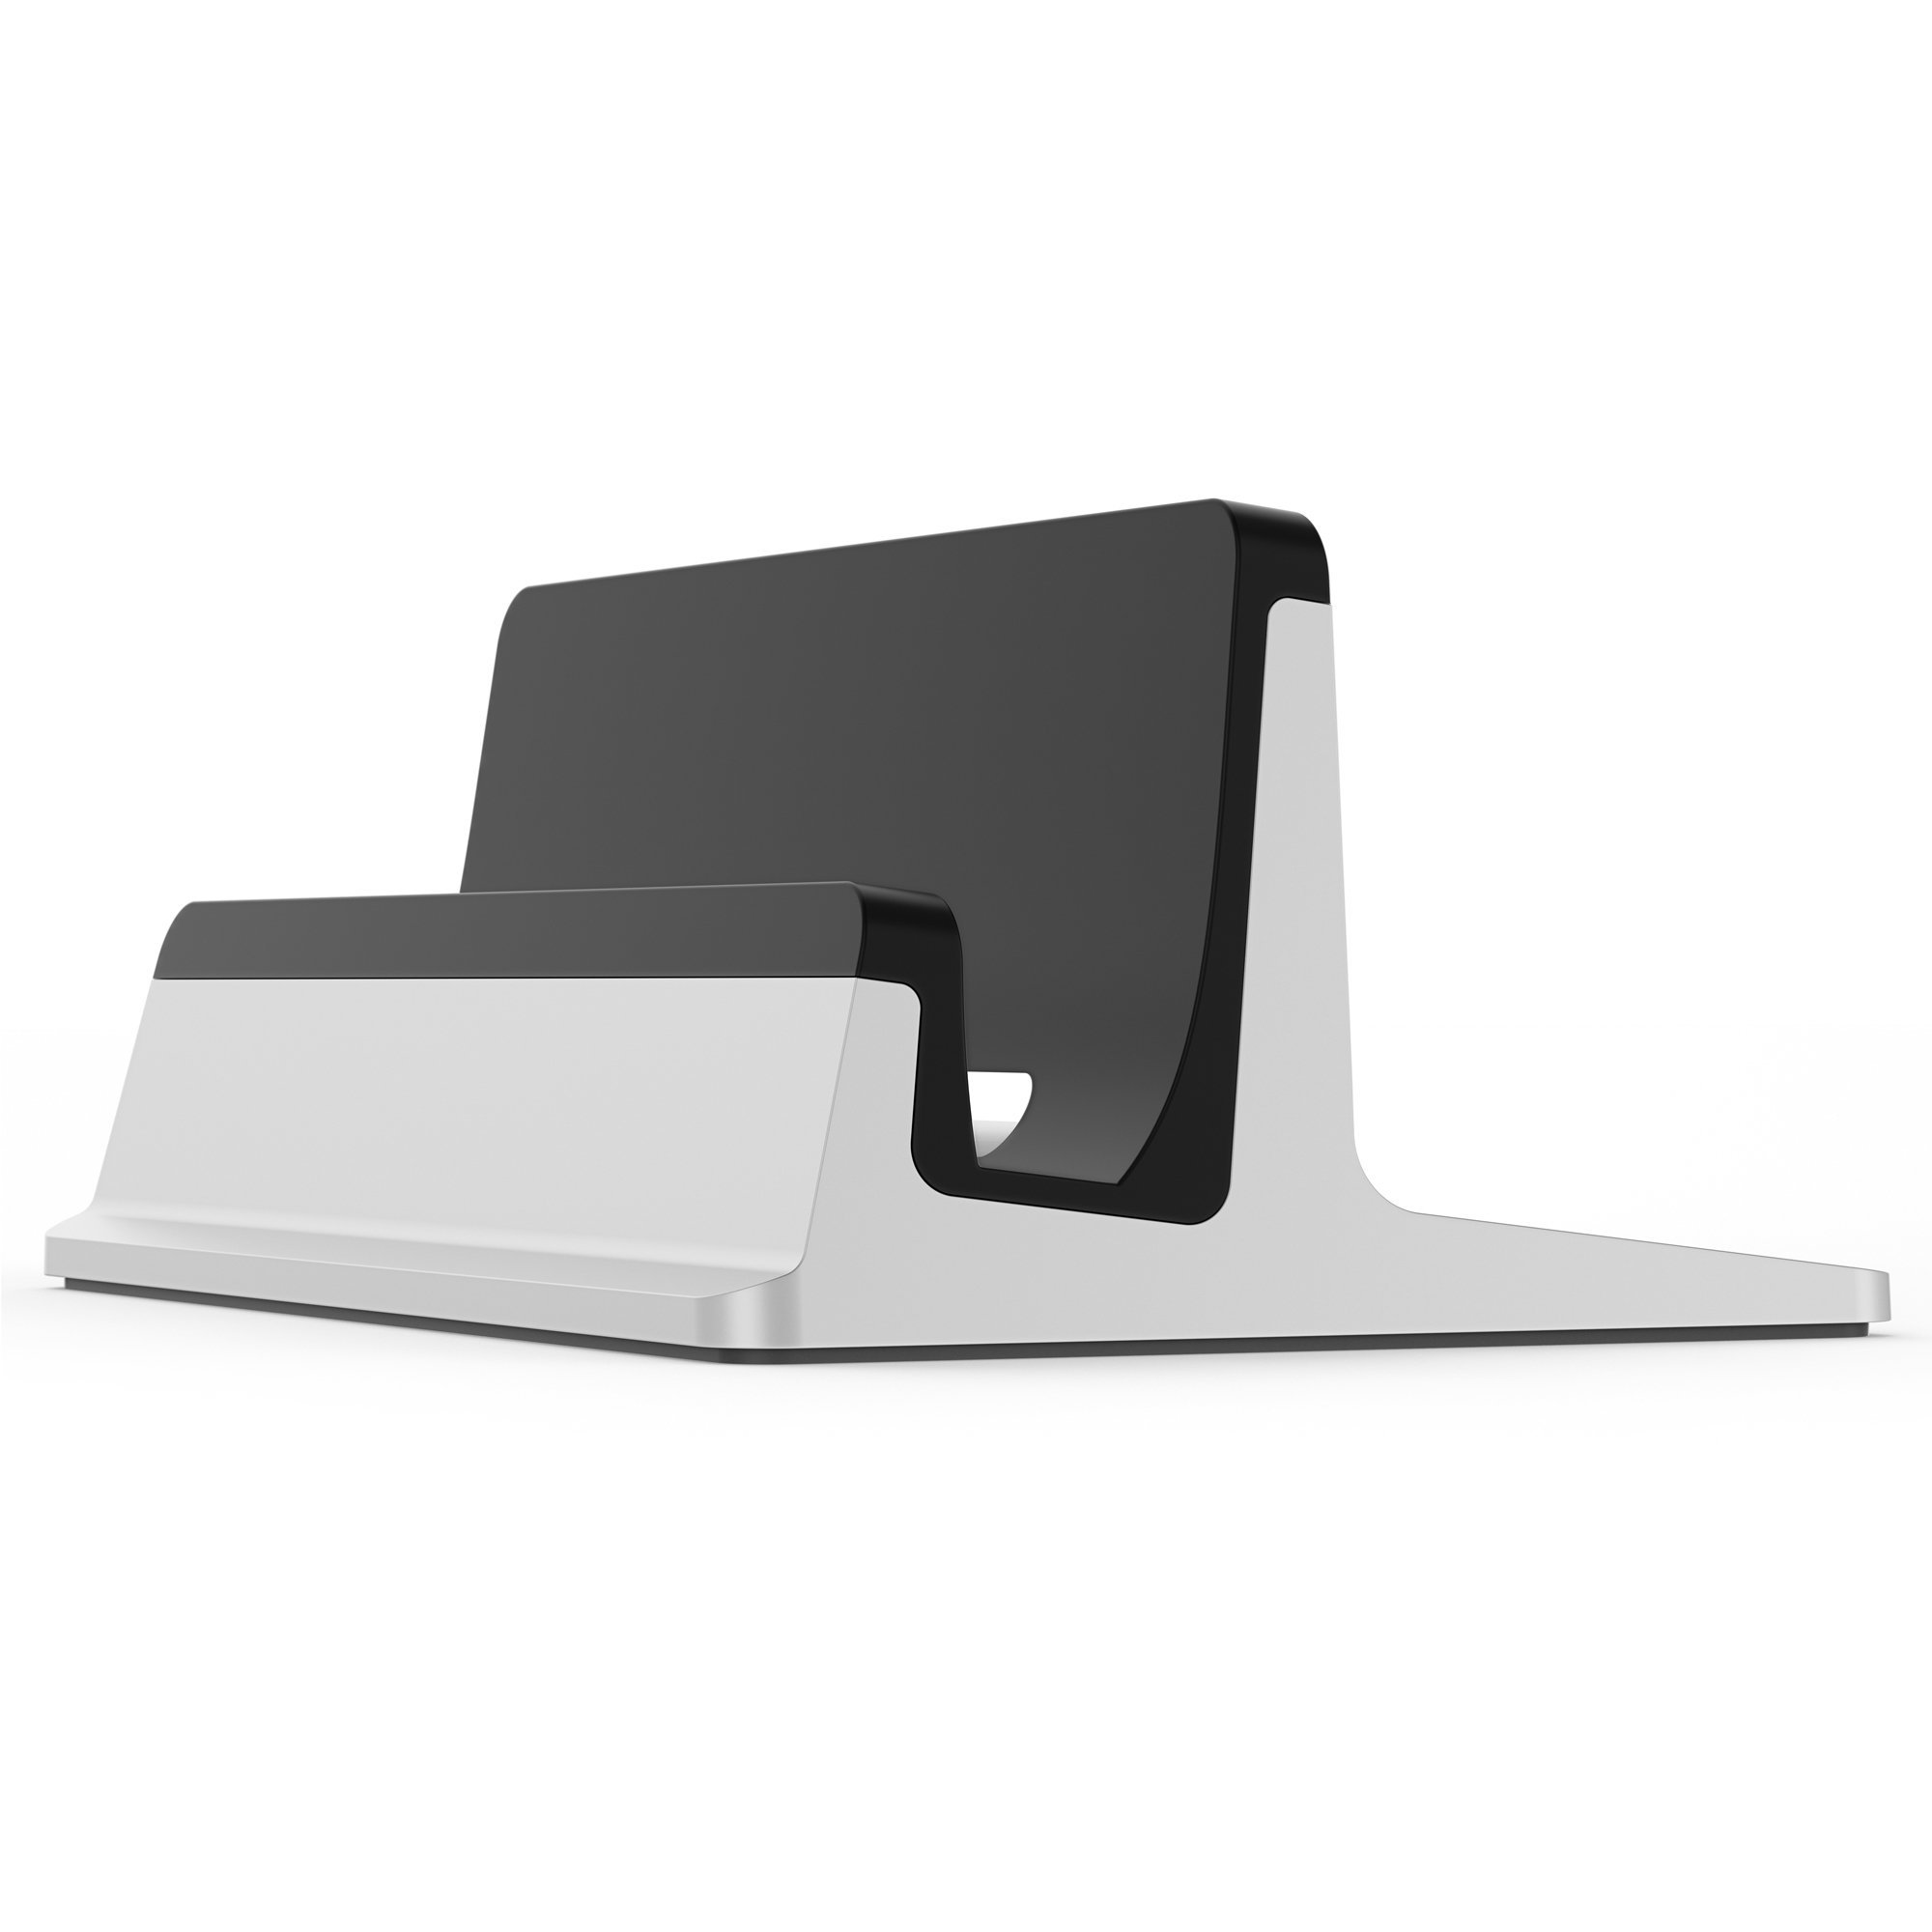 UPPERCASE KRADL Pro Small Profile Aluminum Vertical Stand for Retina MacBook Pro 13'' or 15'' (2012 to 2015 Releases), Silver/Black by UPPERCASE (Image #2)